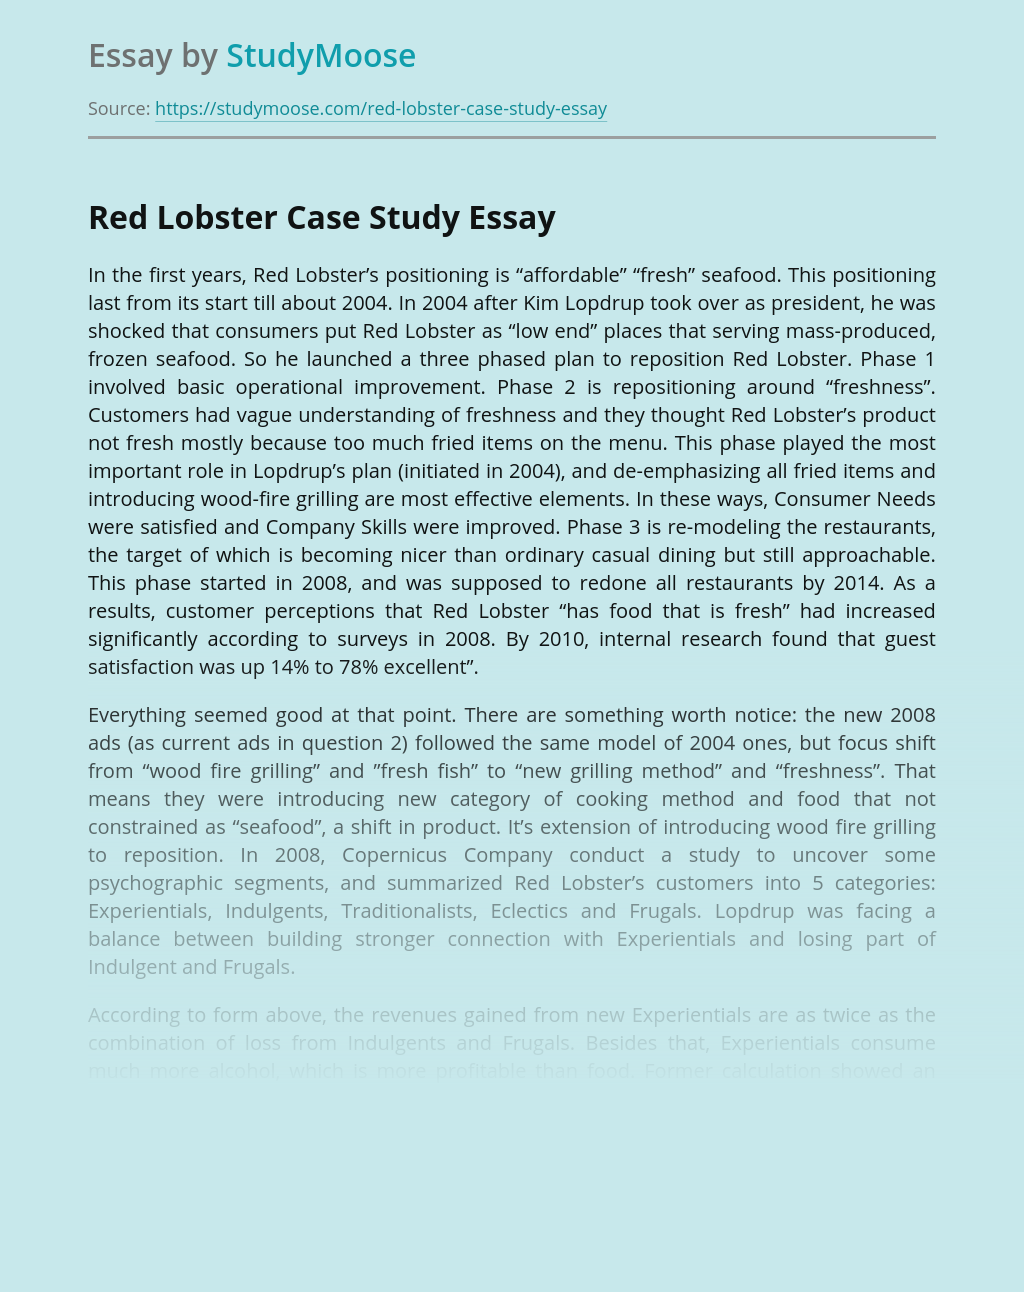 Red Lobster Case Study